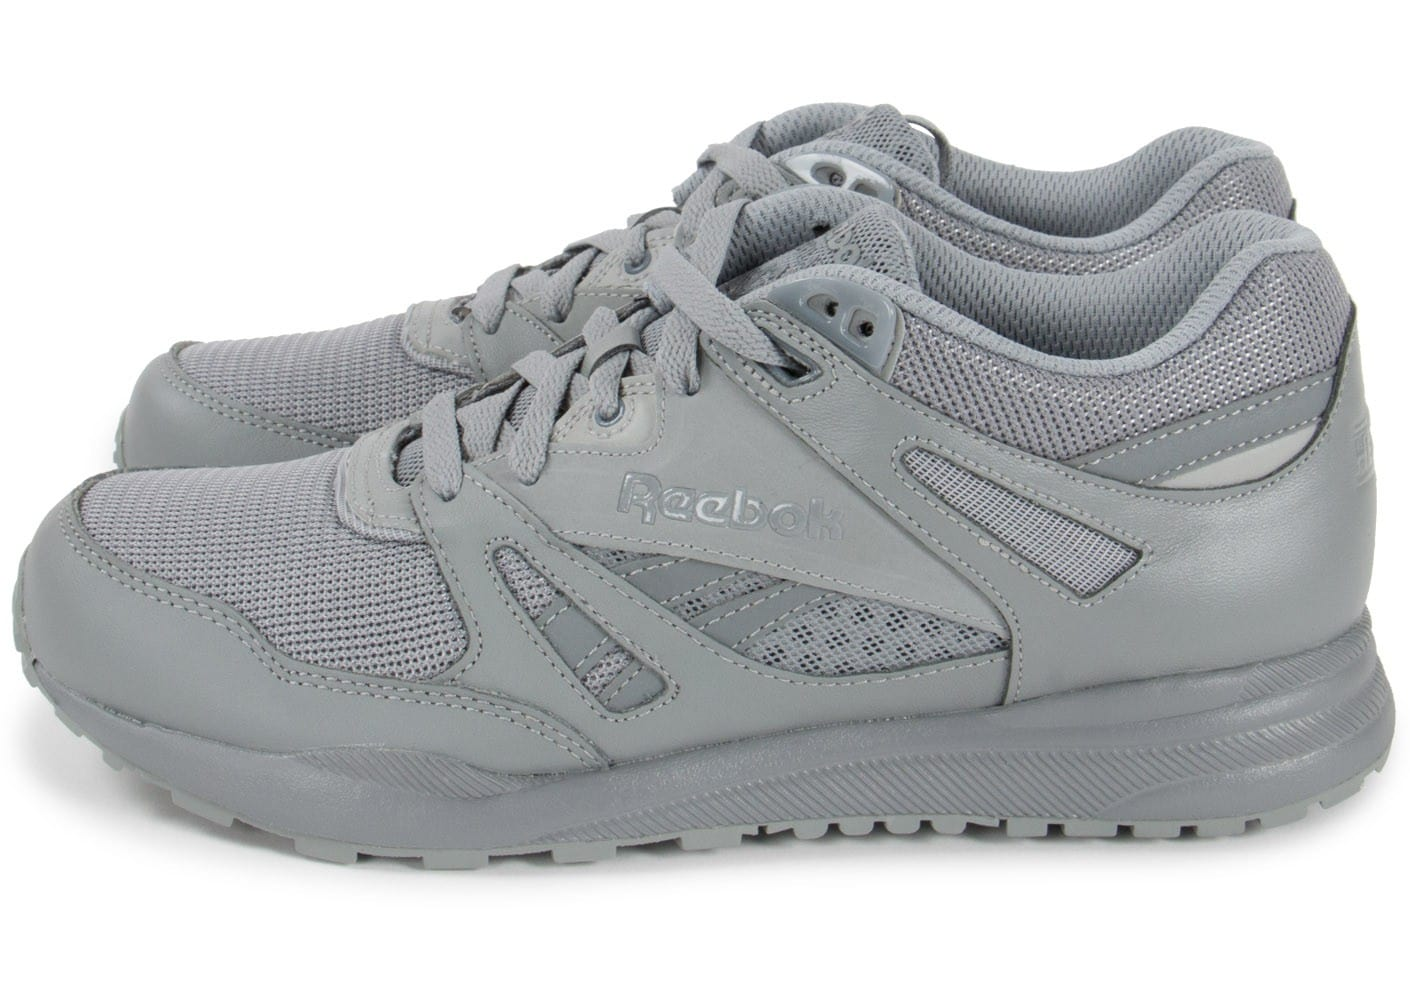 Chaussures Reebok grises homme P6bbFIcrf